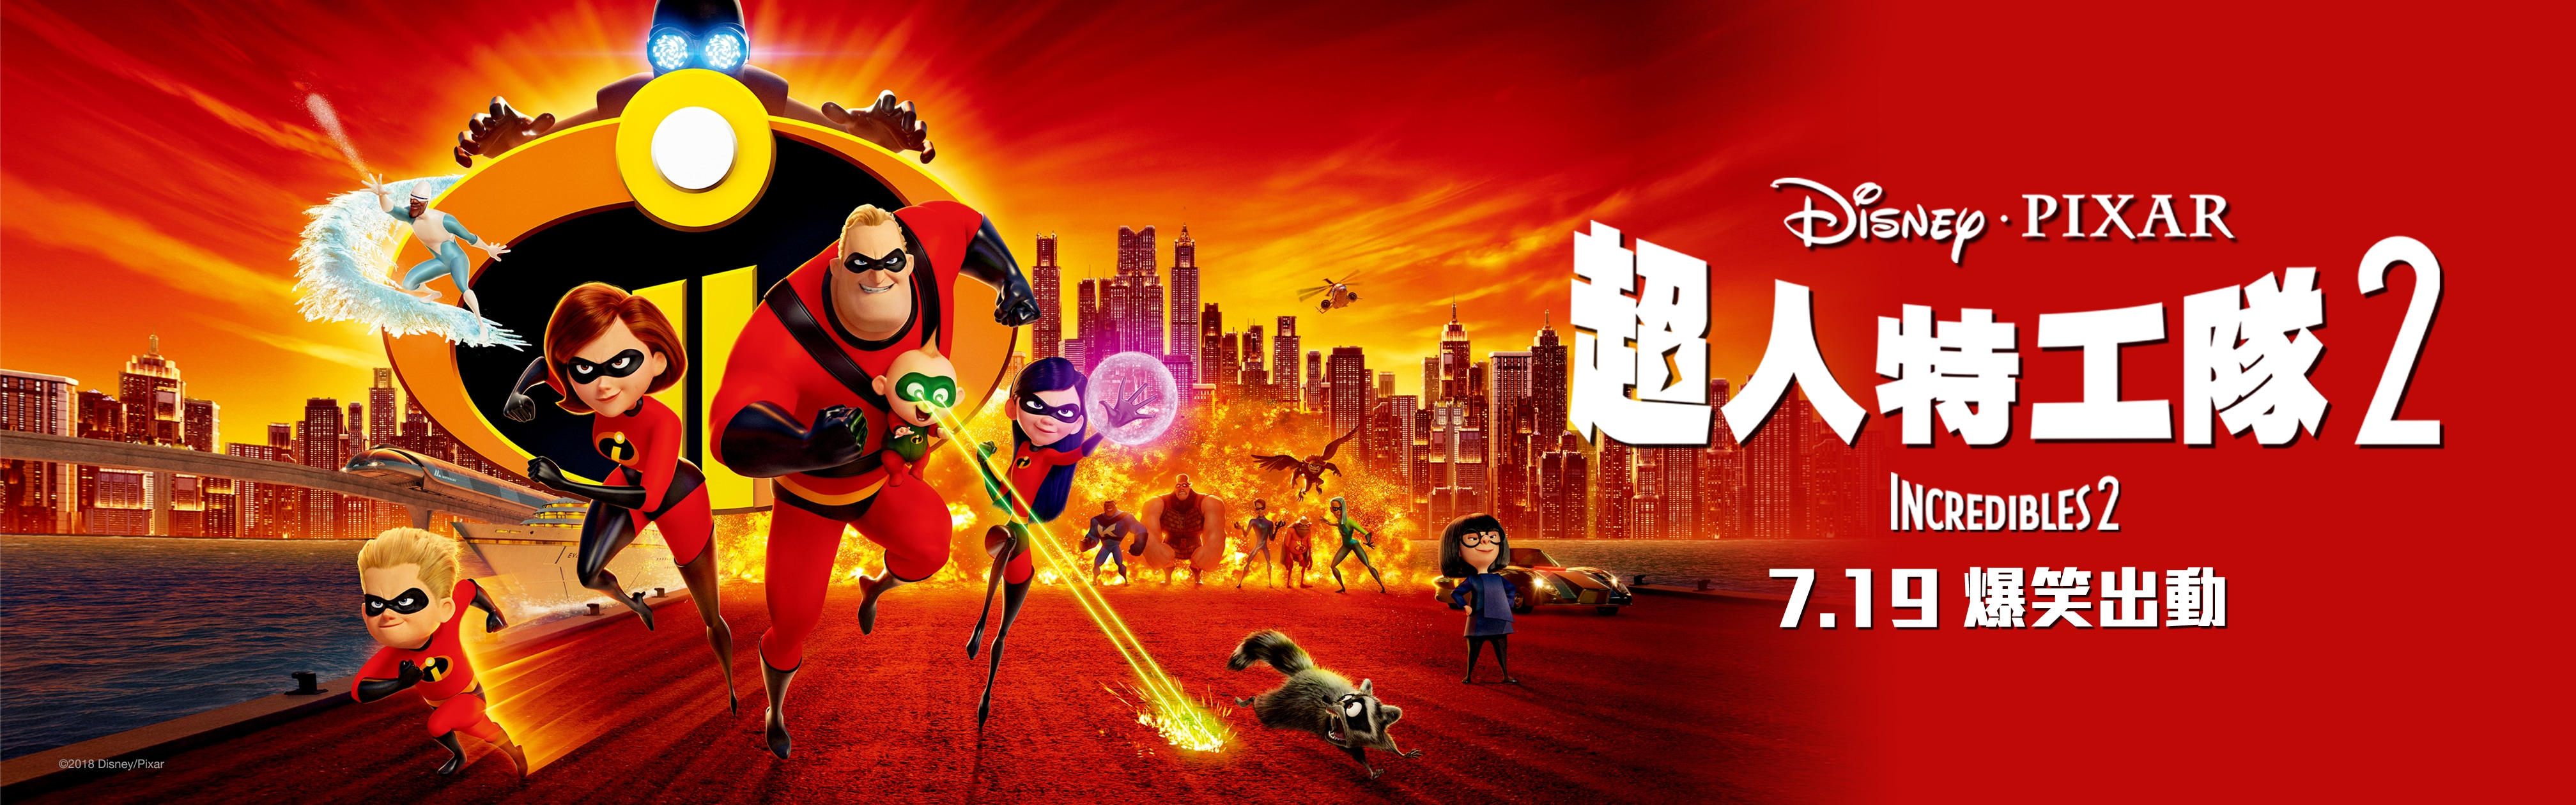 Incredibles 2 - Disney.com banner